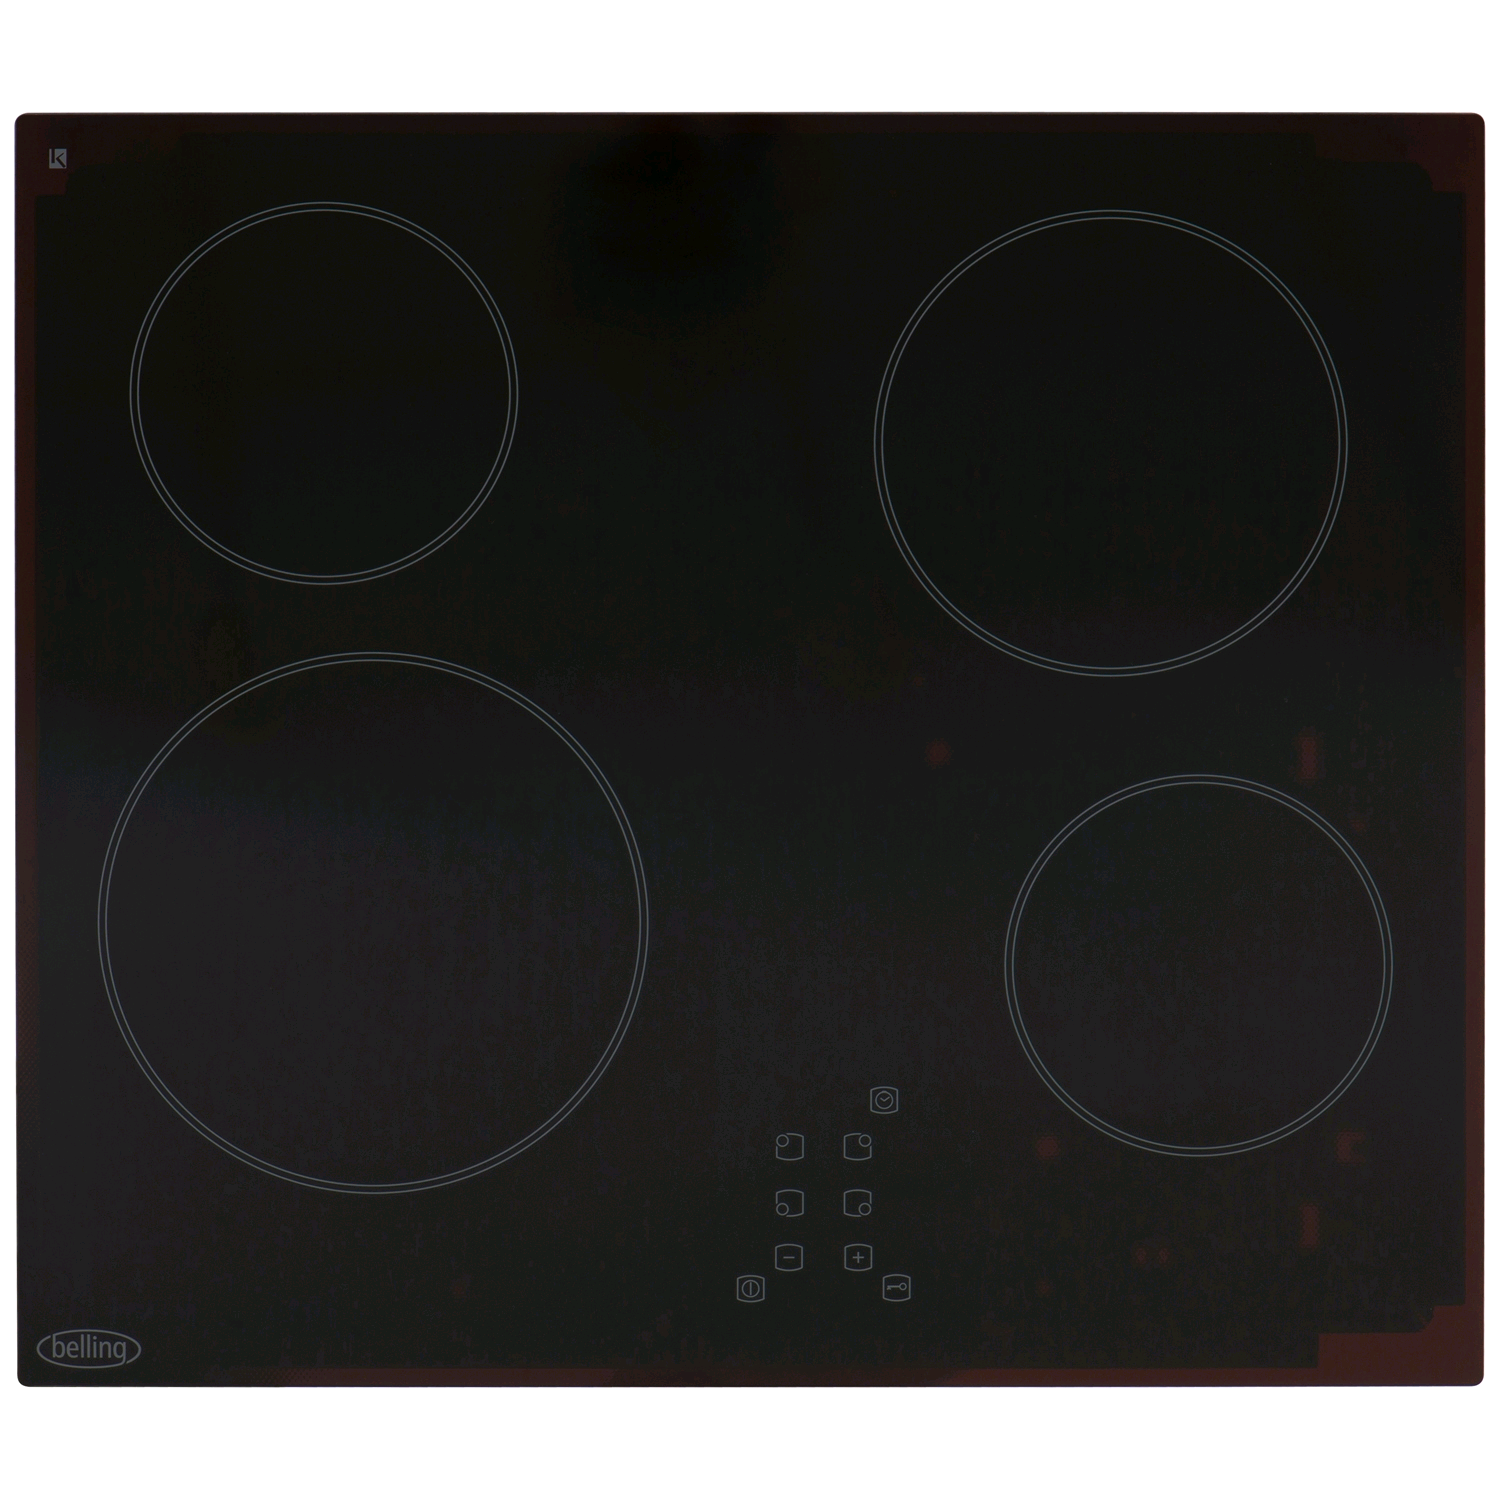 Belling Built in Ceramic Hob Touch Control 60cm